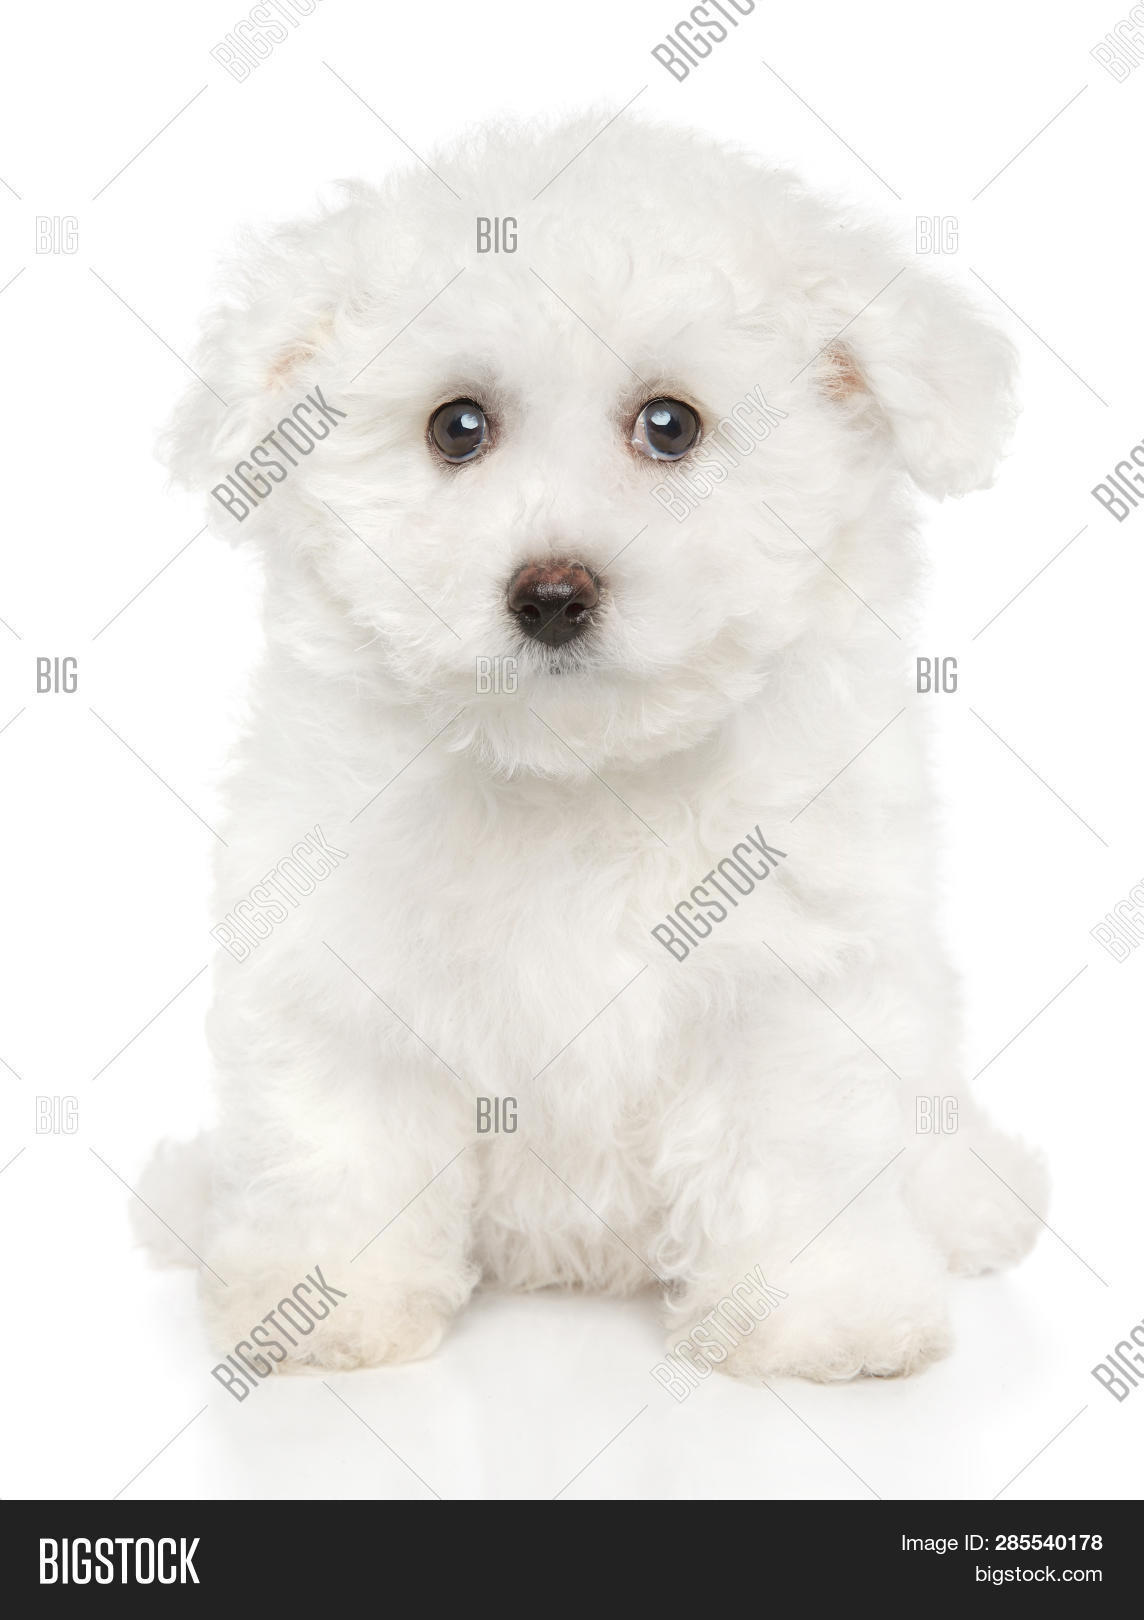 Close Bichon Frise Image Photo Free